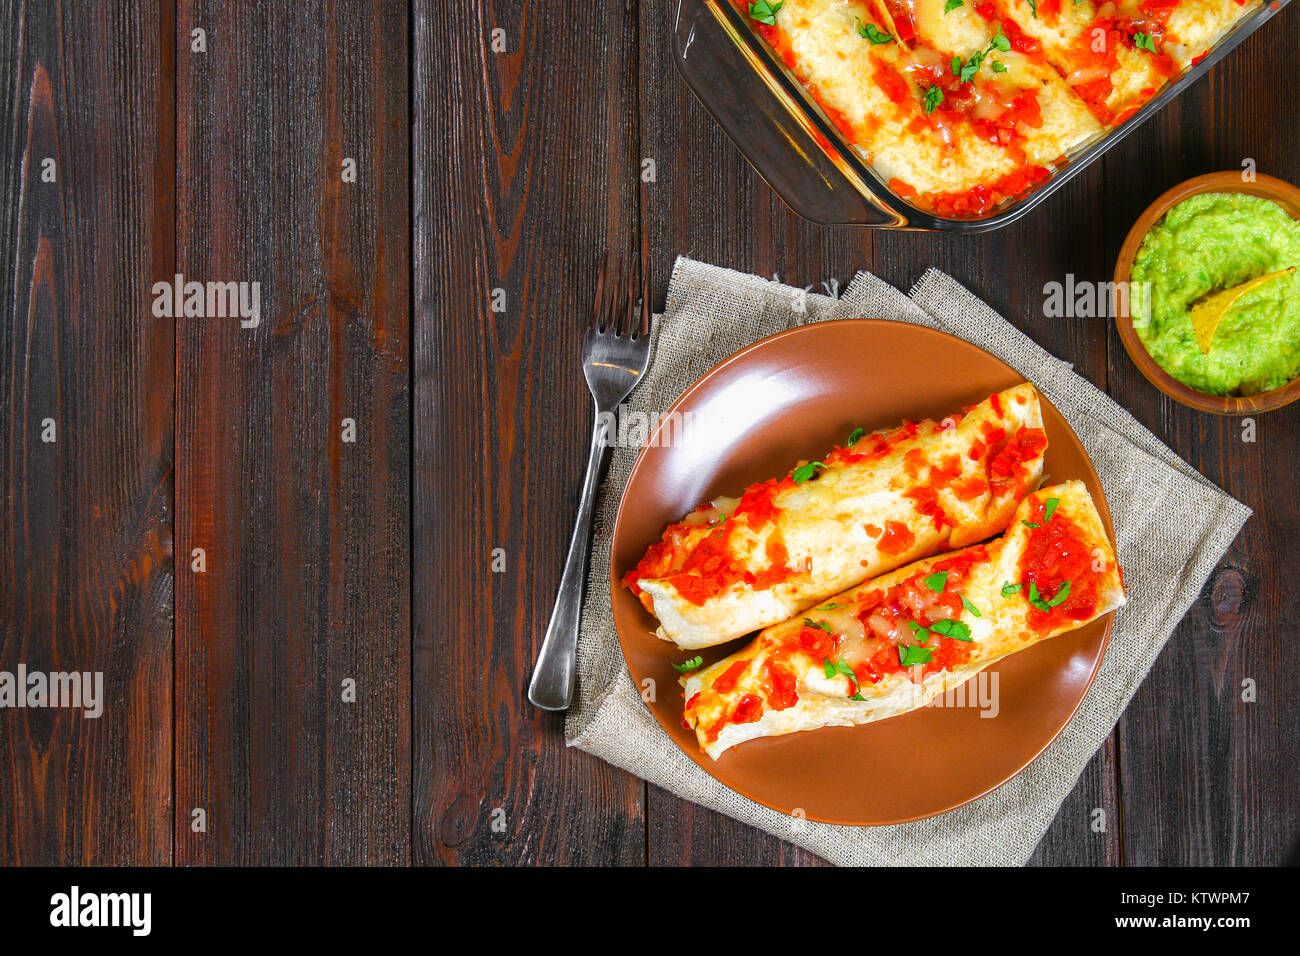 Homemade chicken enchiladas in dish on wooden table. Top view Stock Photo